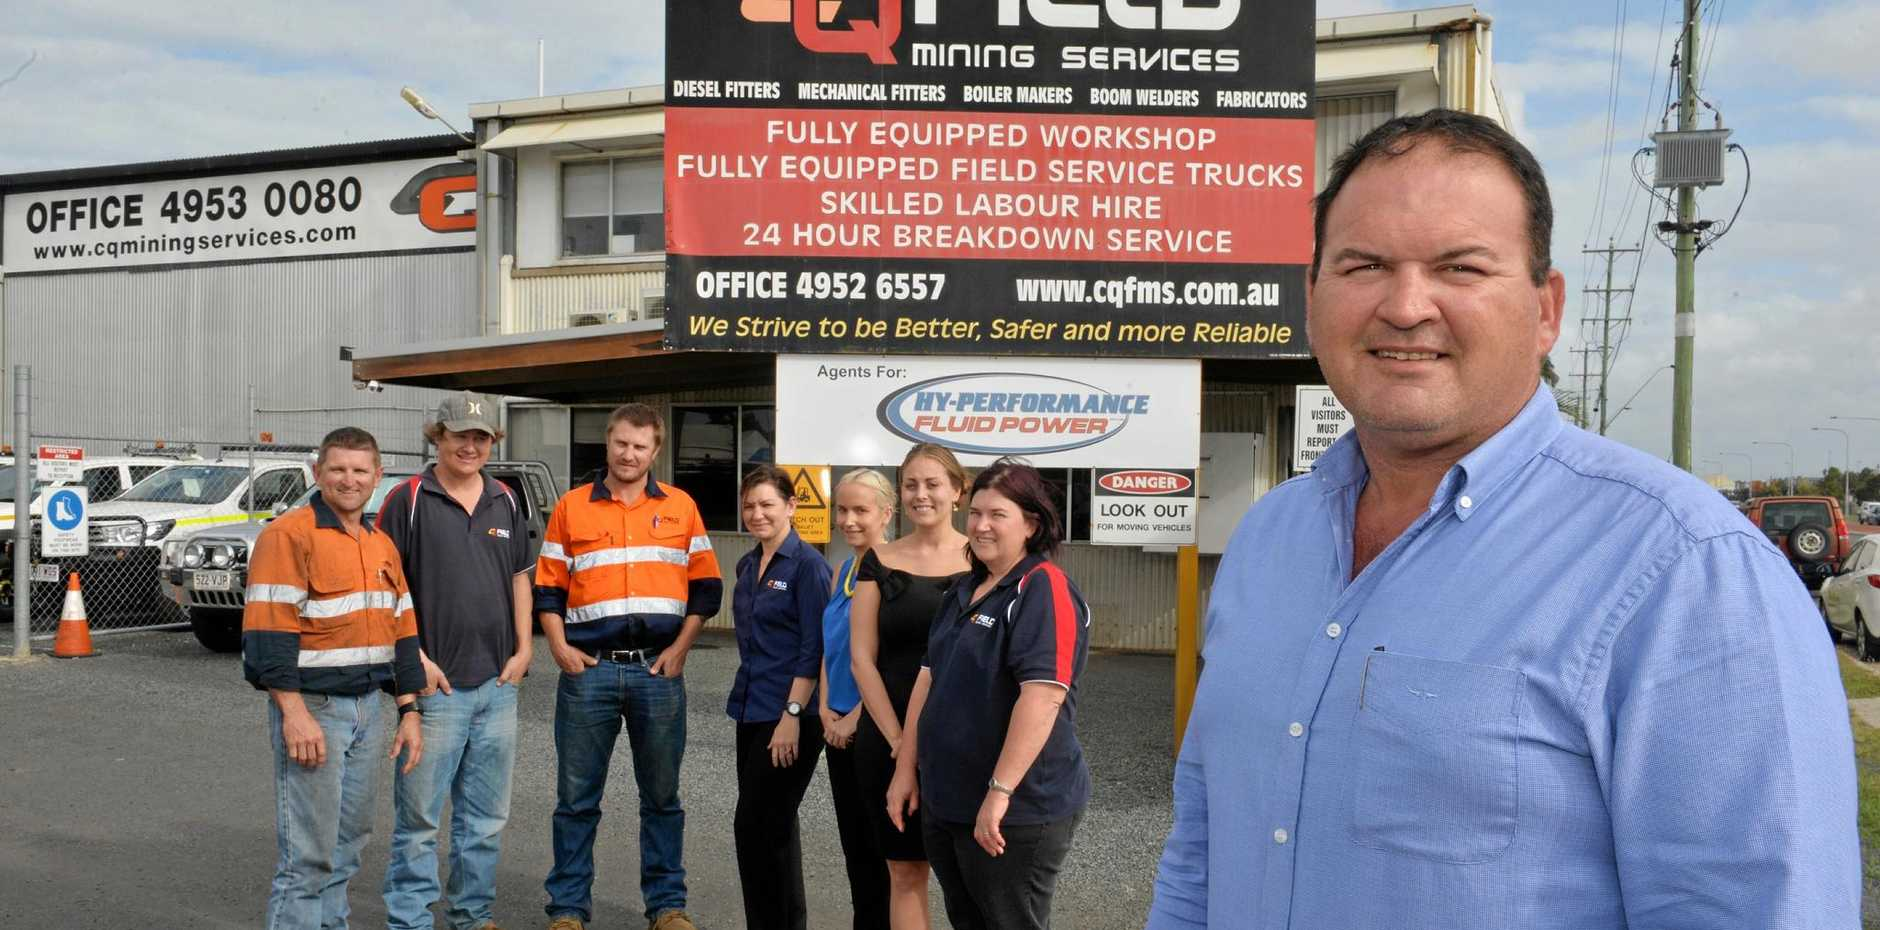 CQ Field Mining general manager Dean Scott (right) and his staff at Paget (from left) Danny Chrzanowski, Liam Keighran, Jason Holt, Julie Hope, Kirsty Head, Sara Aston and Sharon McLean.